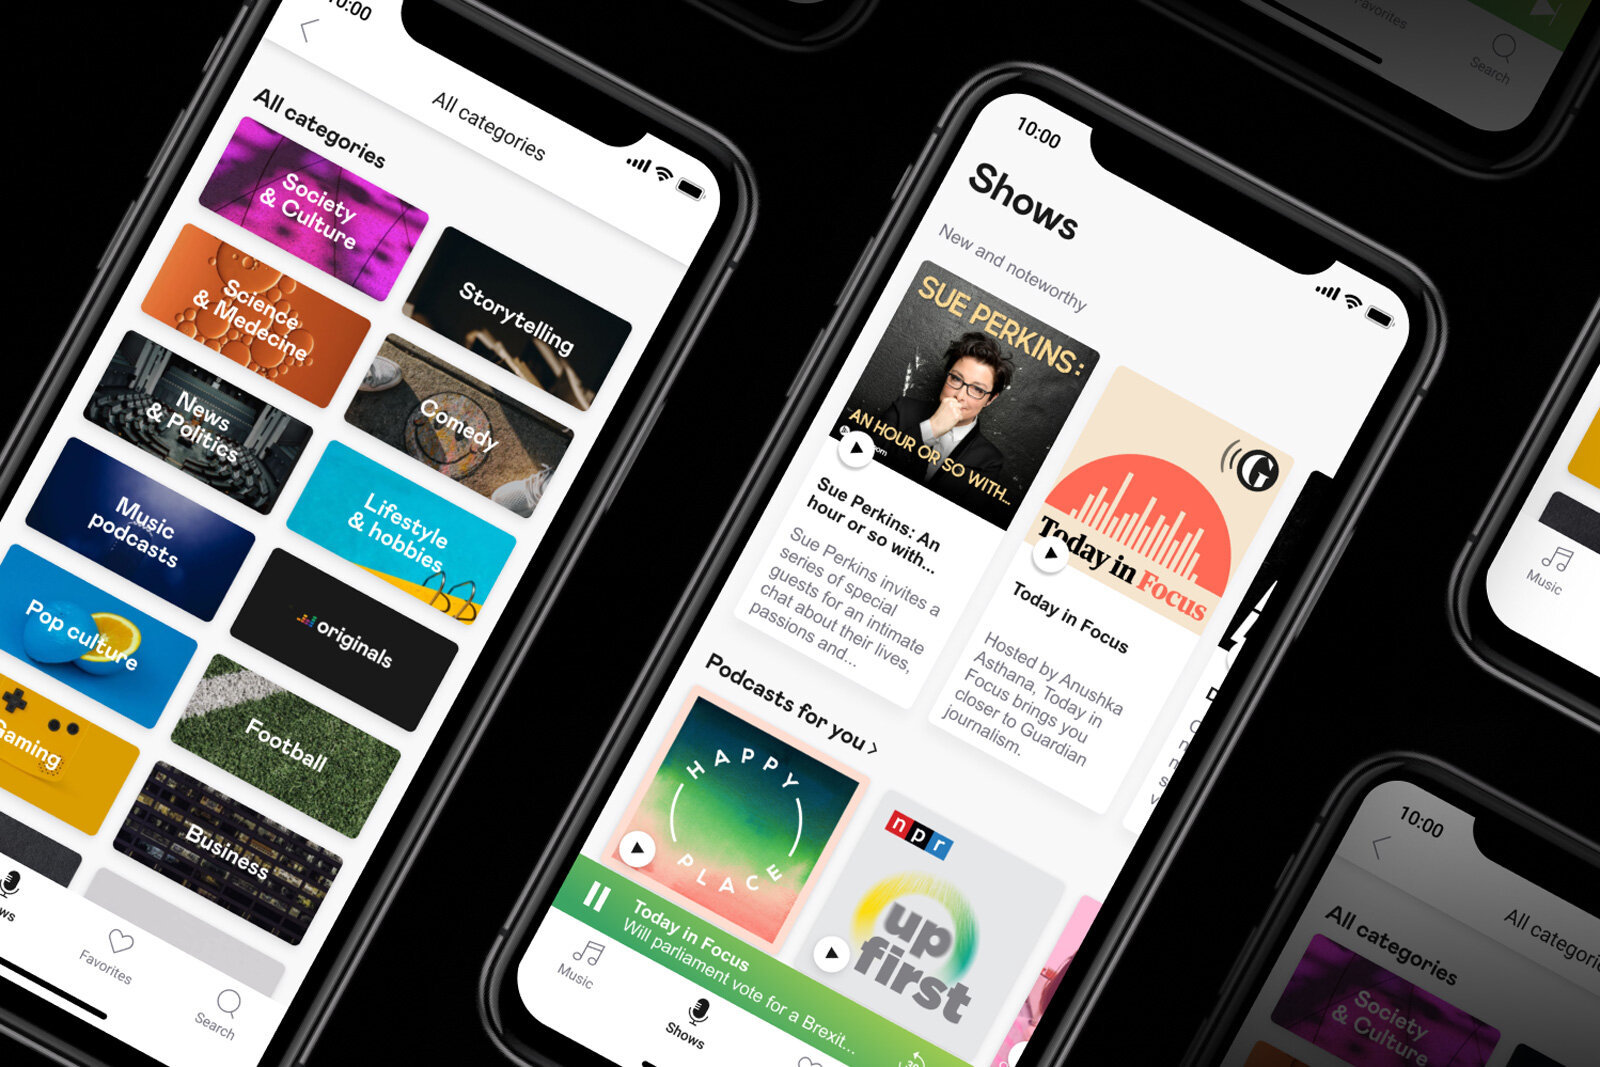 Lossless Audio By Deezer Finally Comes To iOS, Android, And The Web